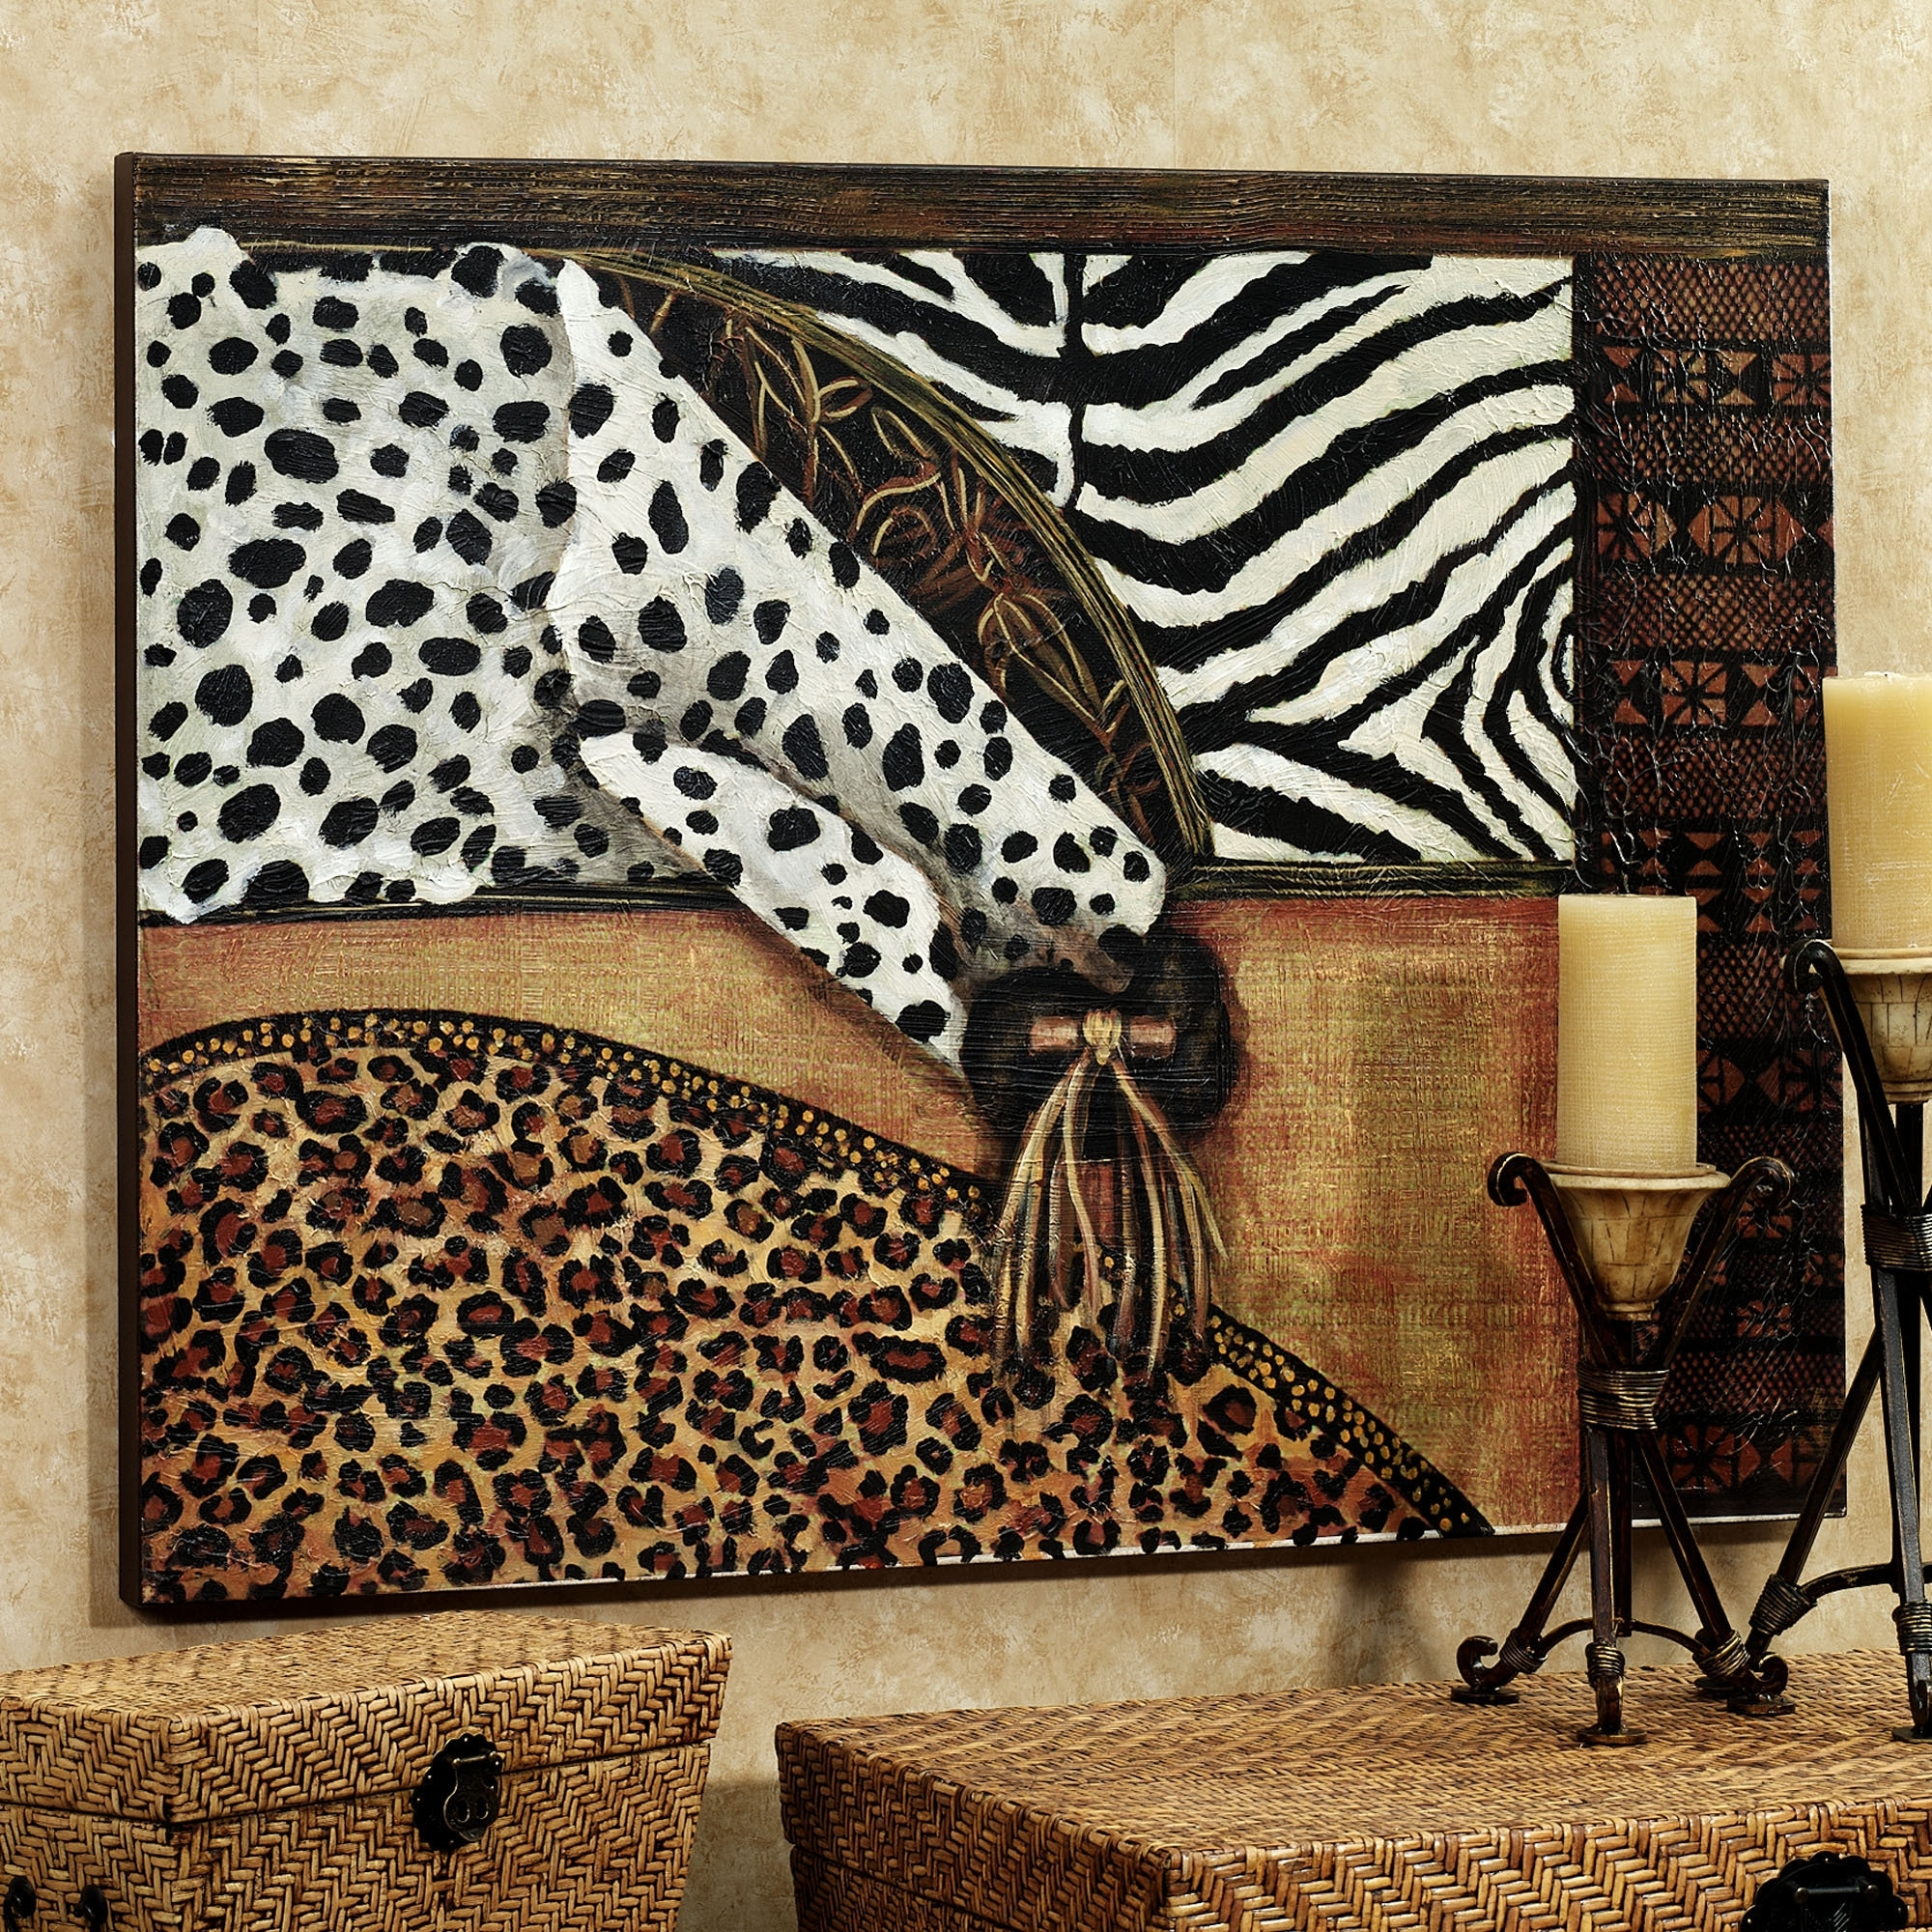 African Wall Decor Superb African Wall Decor – Wall Decoration And Within Current African Wall Art (View 7 of 15)